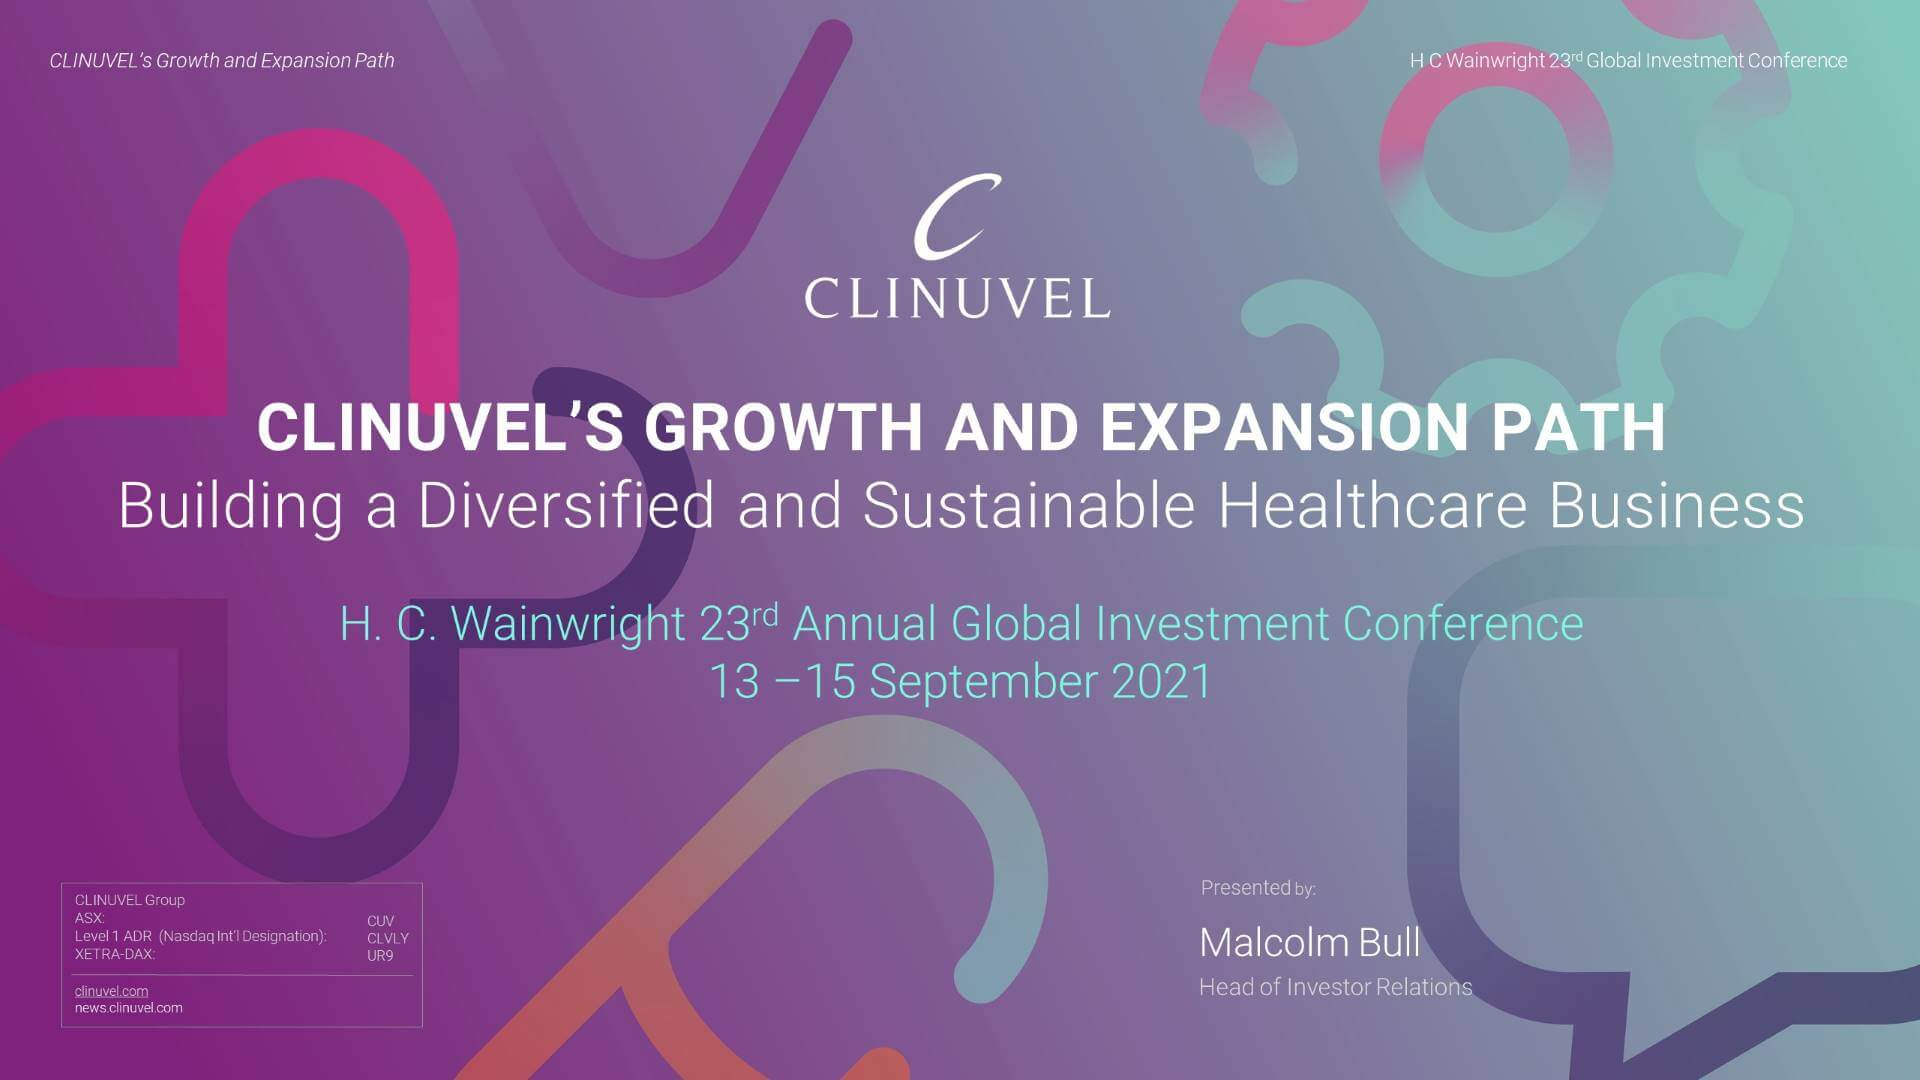 H. C. Wainwright 23rd Annual Global Investment Conference - 1